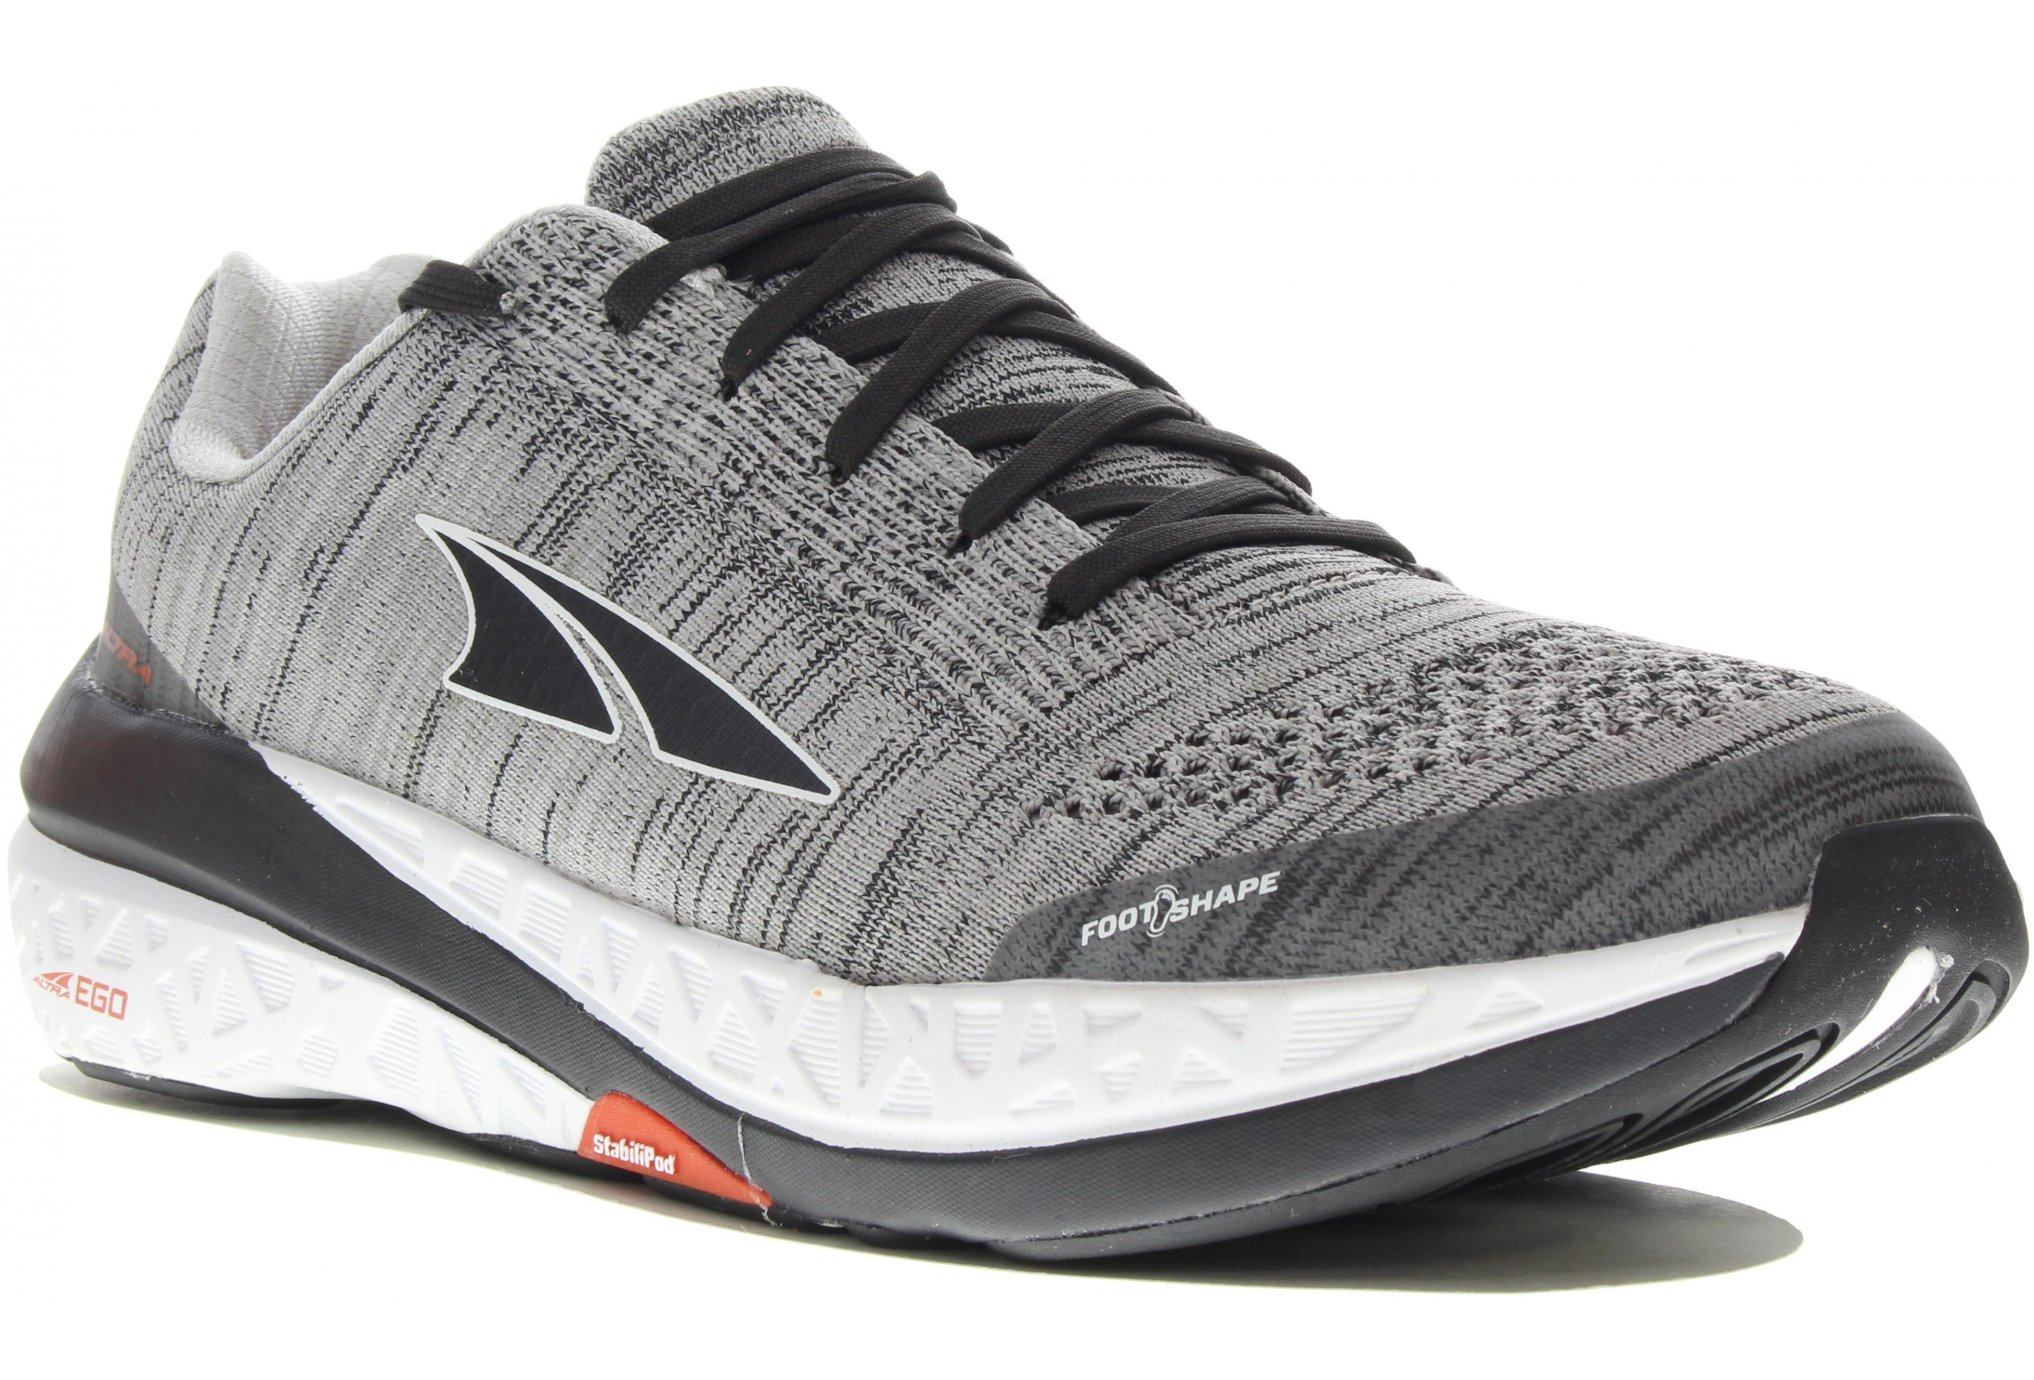 Altra Paradigm 4.0 Chaussures homme